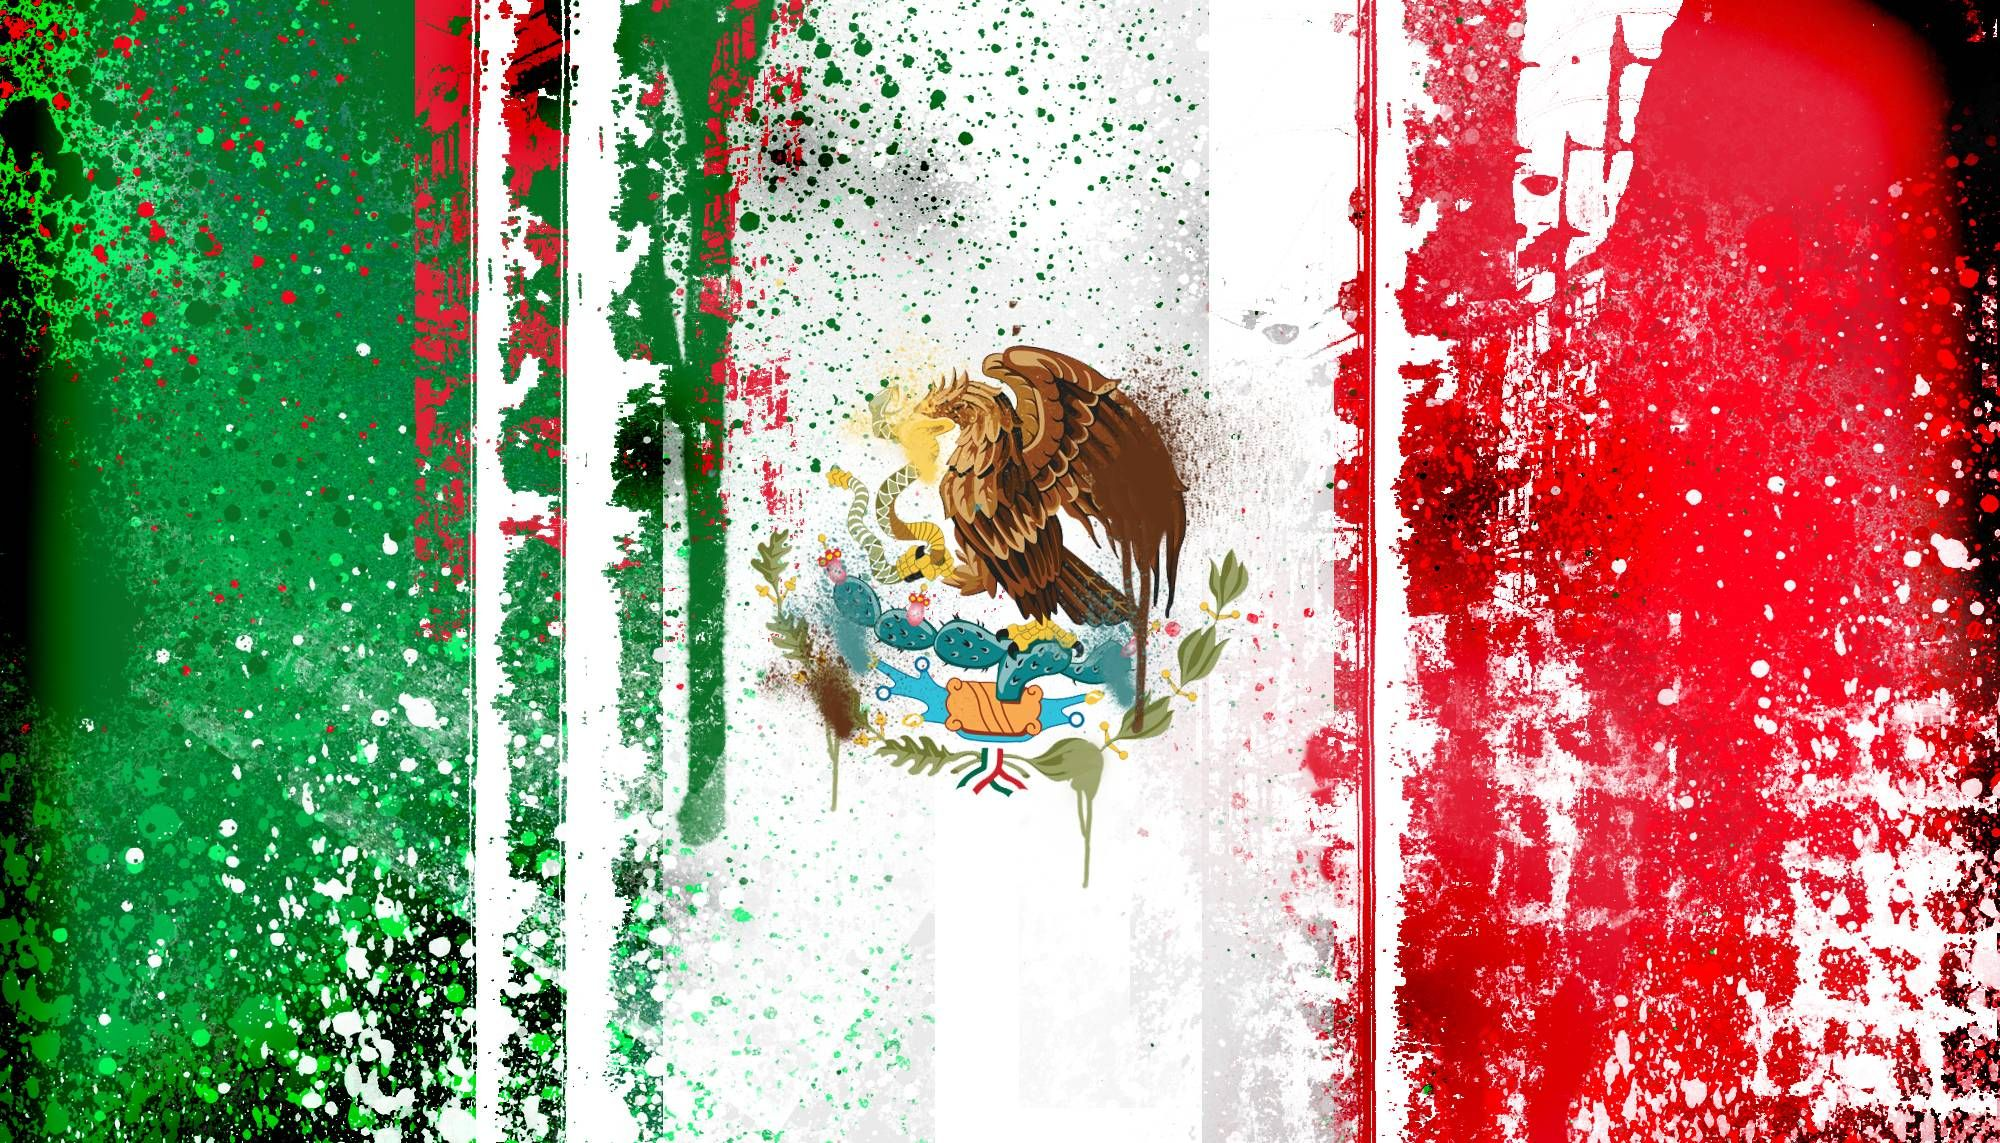 Free Desktop Wallpapers Mexico Wallpaper Wide Mexico HDQ